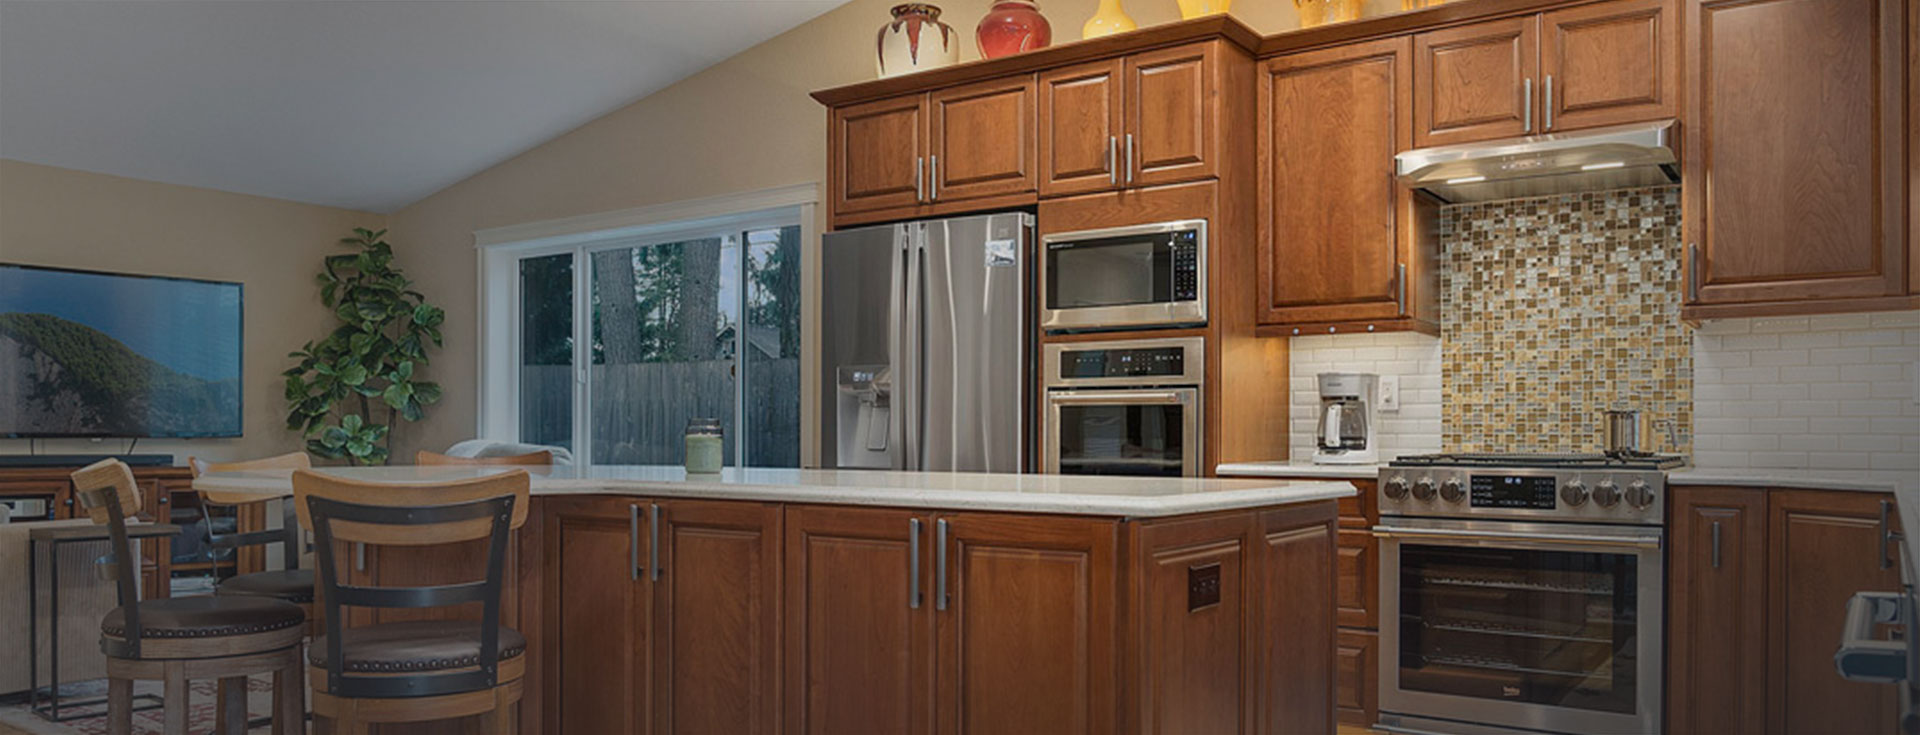 Project-Hero-Torres-Inspiration - Cabinets by Trivonna